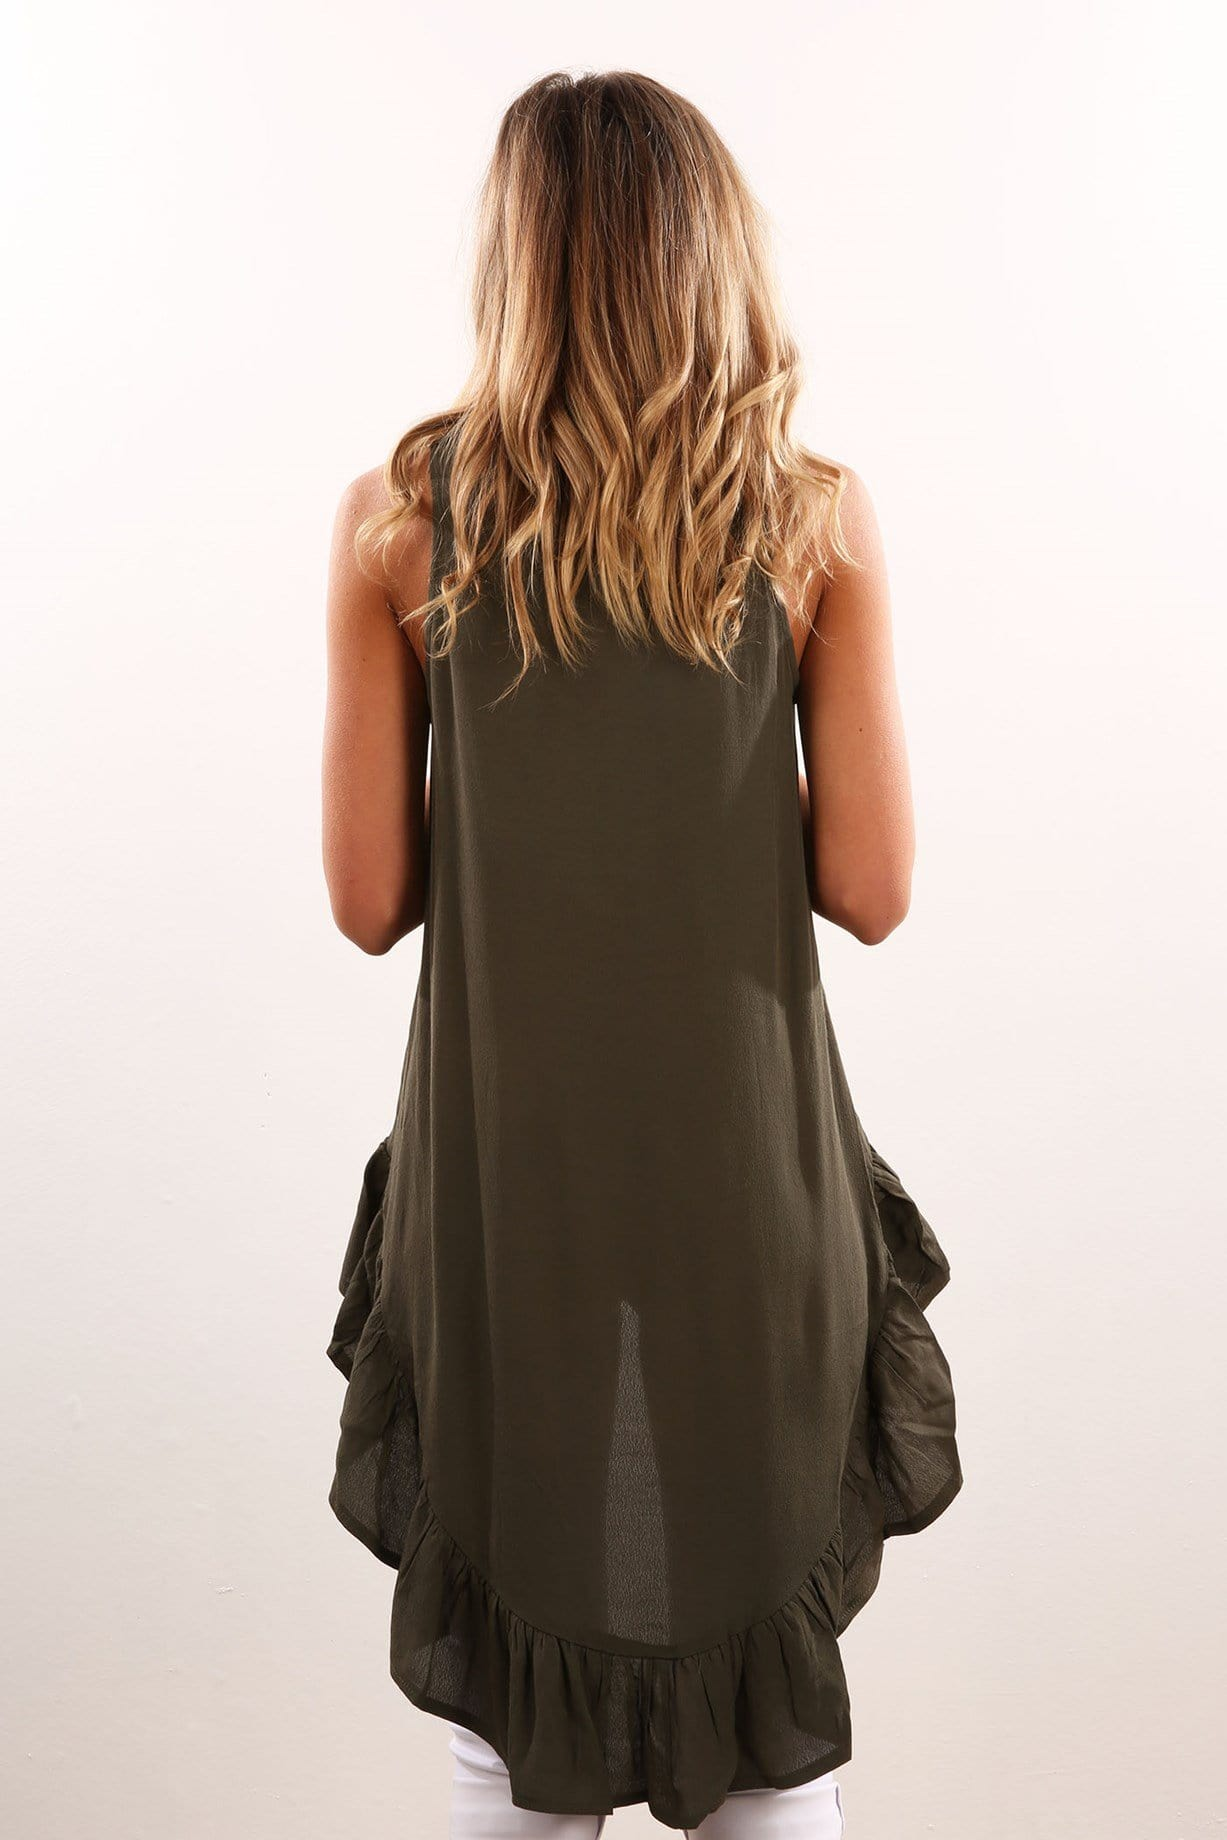 Double Take Top Khaki